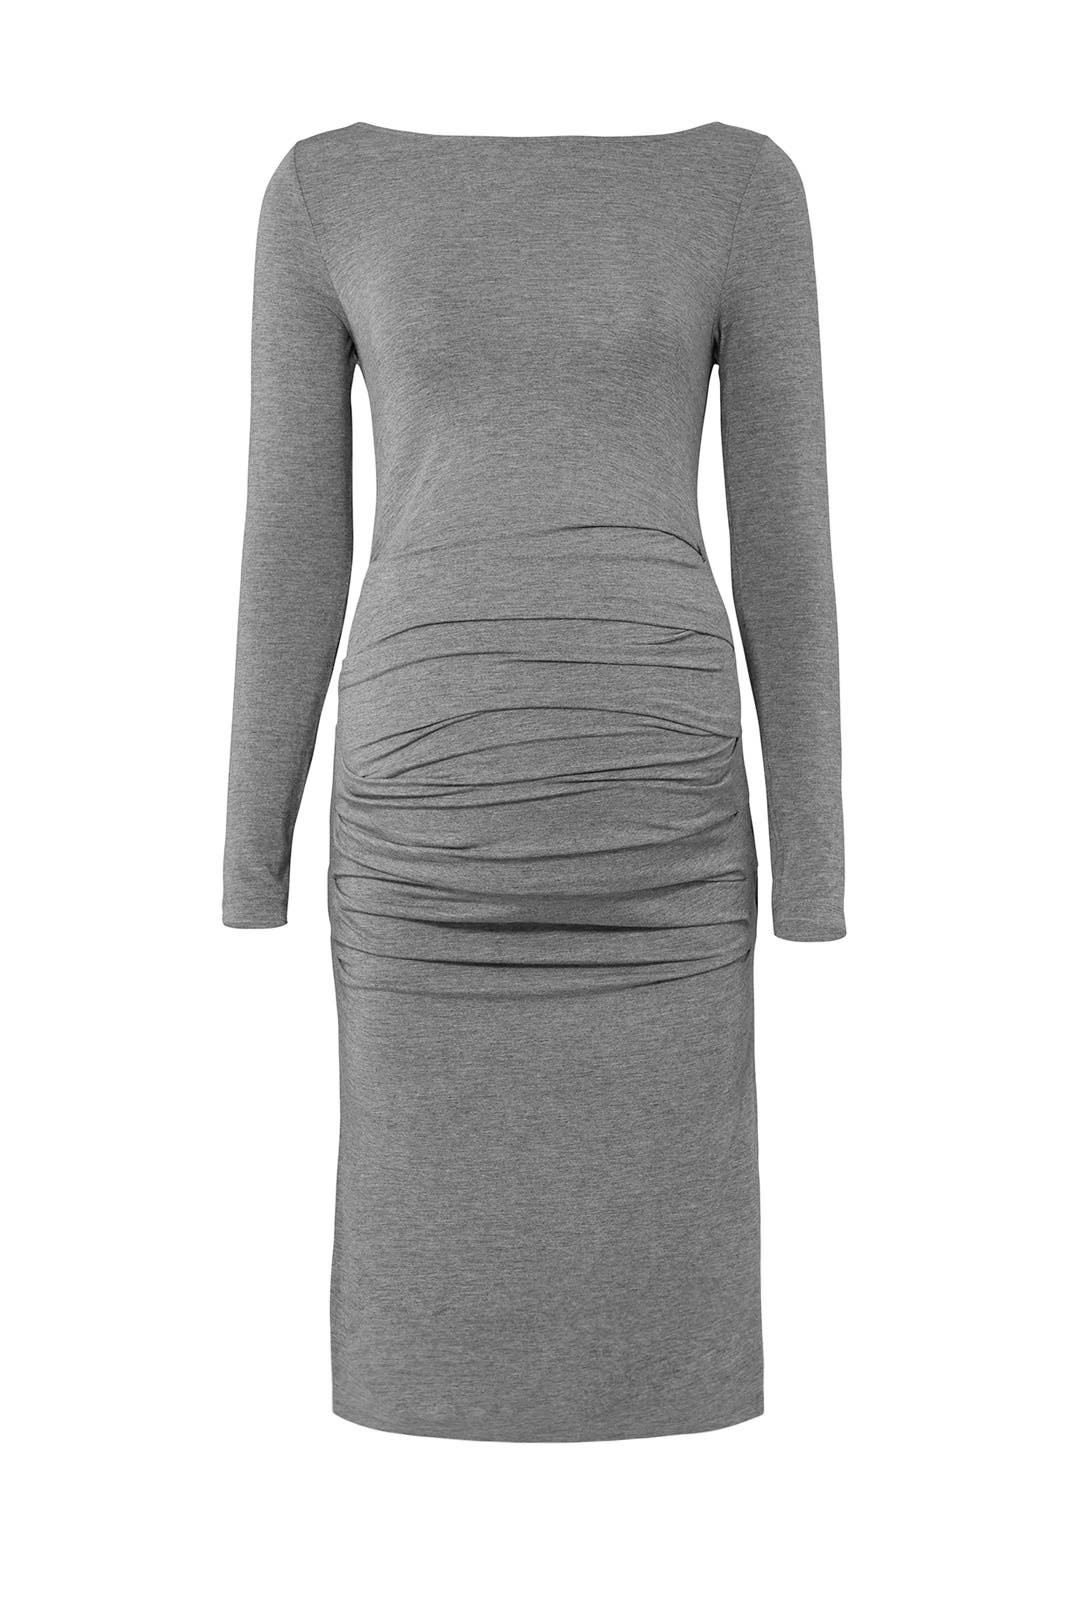 Grey pleated maternity dress by ingrid isabel for 30 rent the grey pleated maternity dress by ingrid isabel for 30 rent the runway ombrellifo Gallery